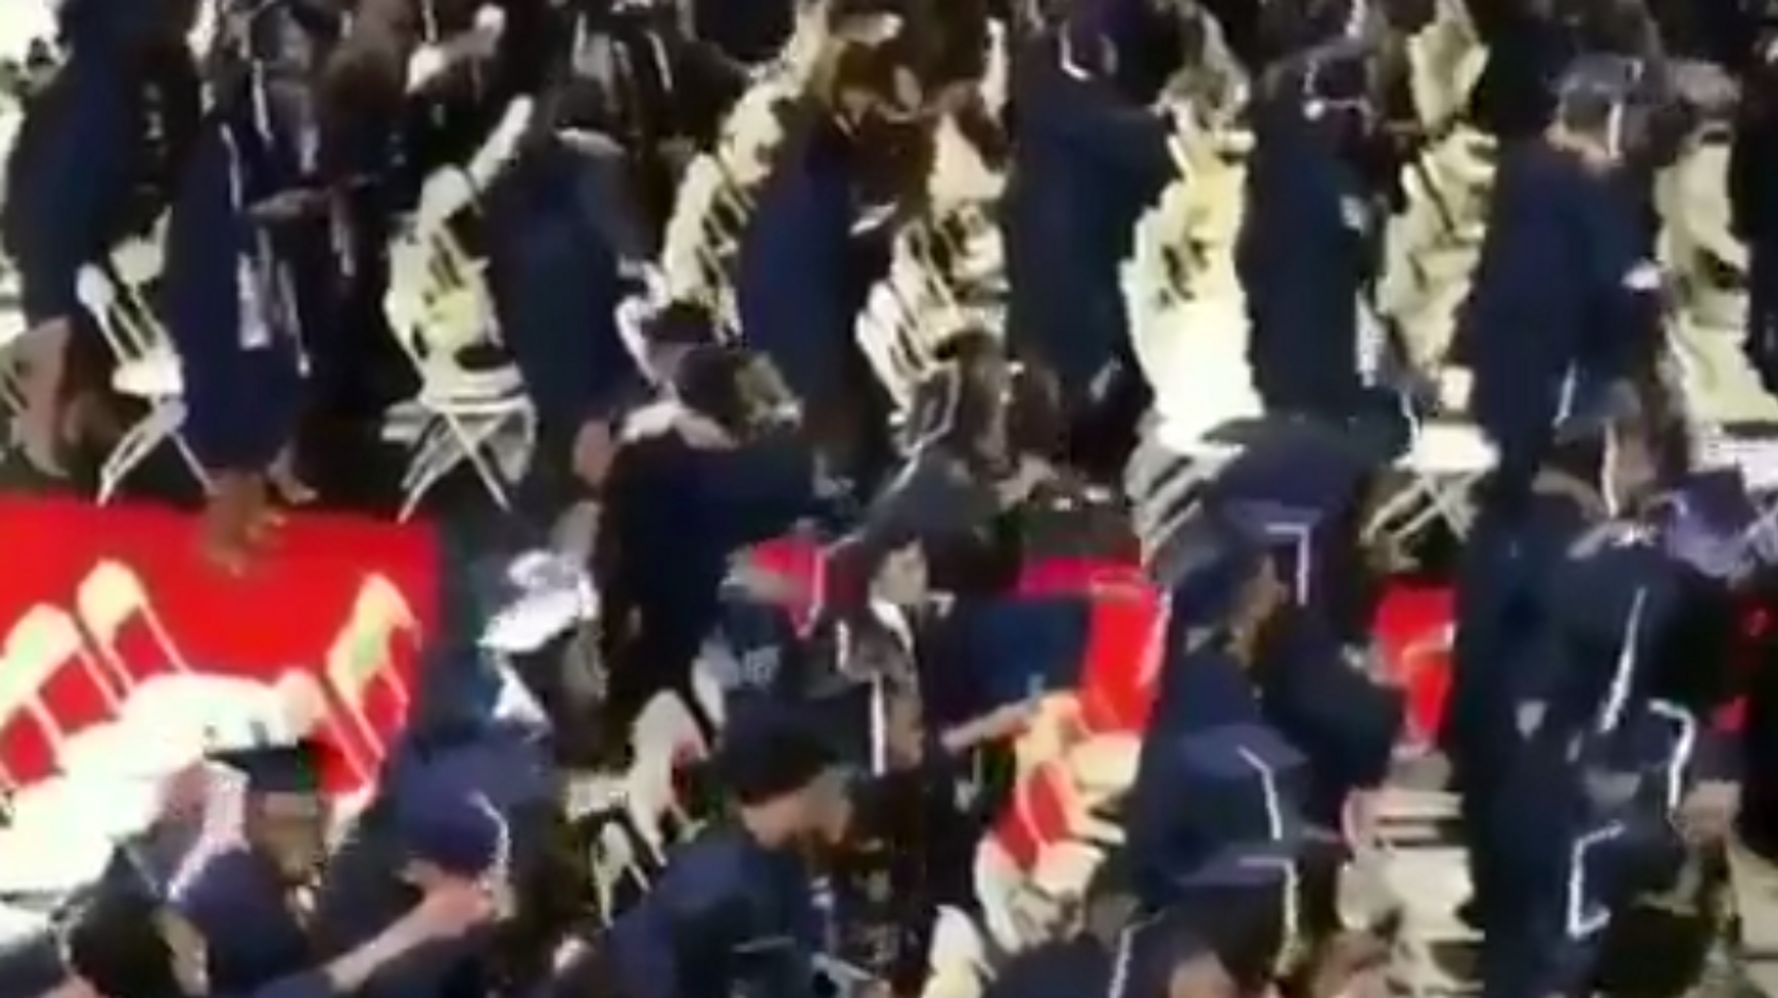 These Black Graduates Swag Surfing Are The Epitome Of Black Joy